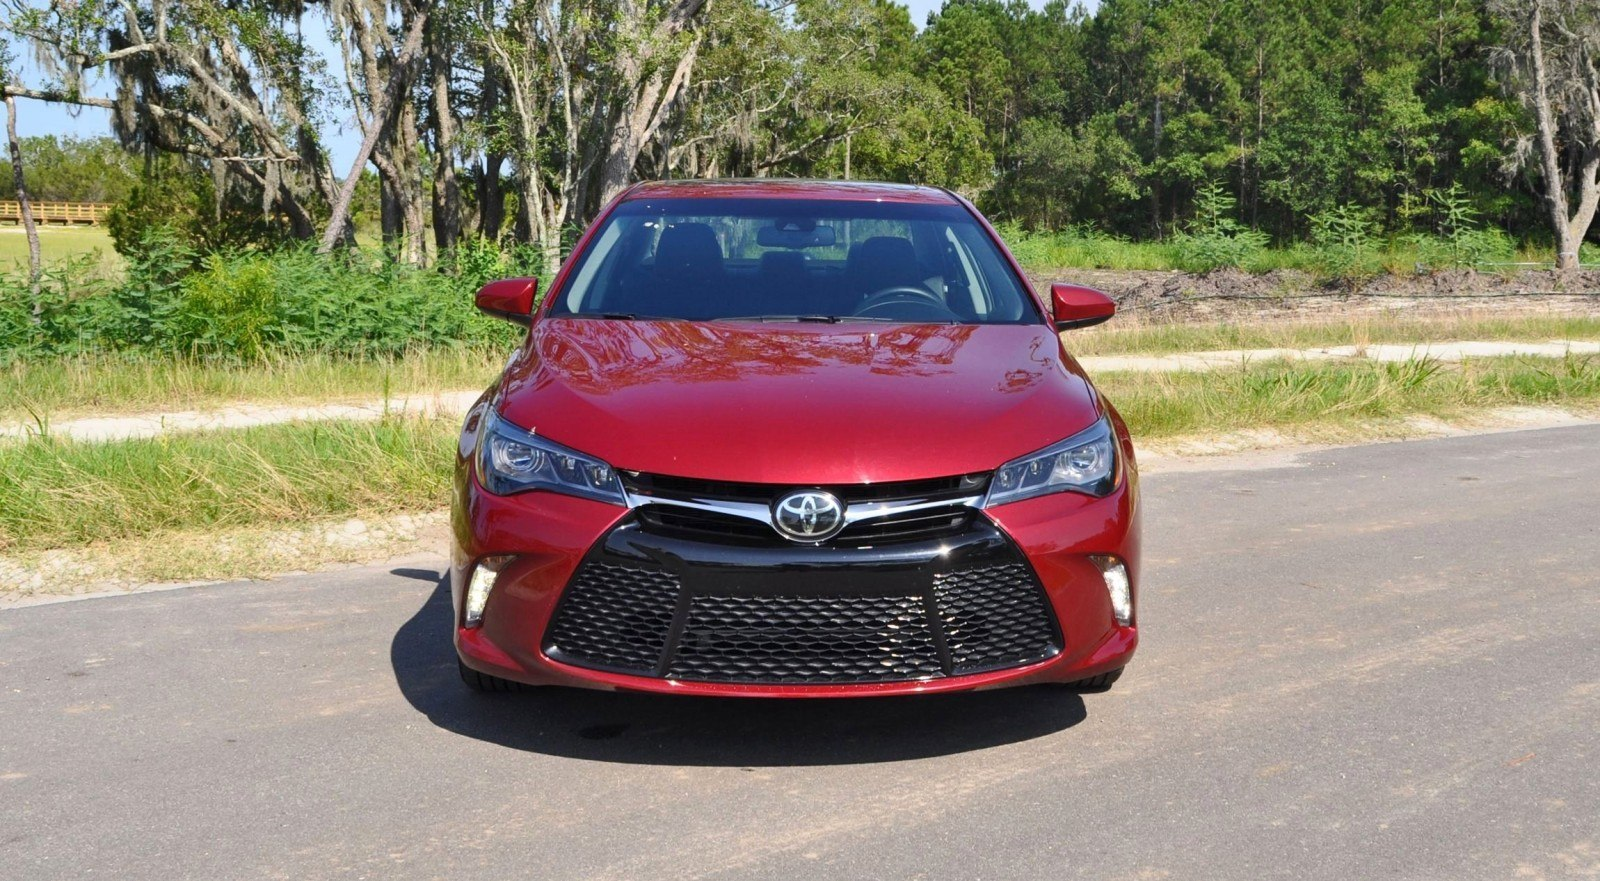 2015 toyota camry xse colors 39. Black Bedroom Furniture Sets. Home Design Ideas